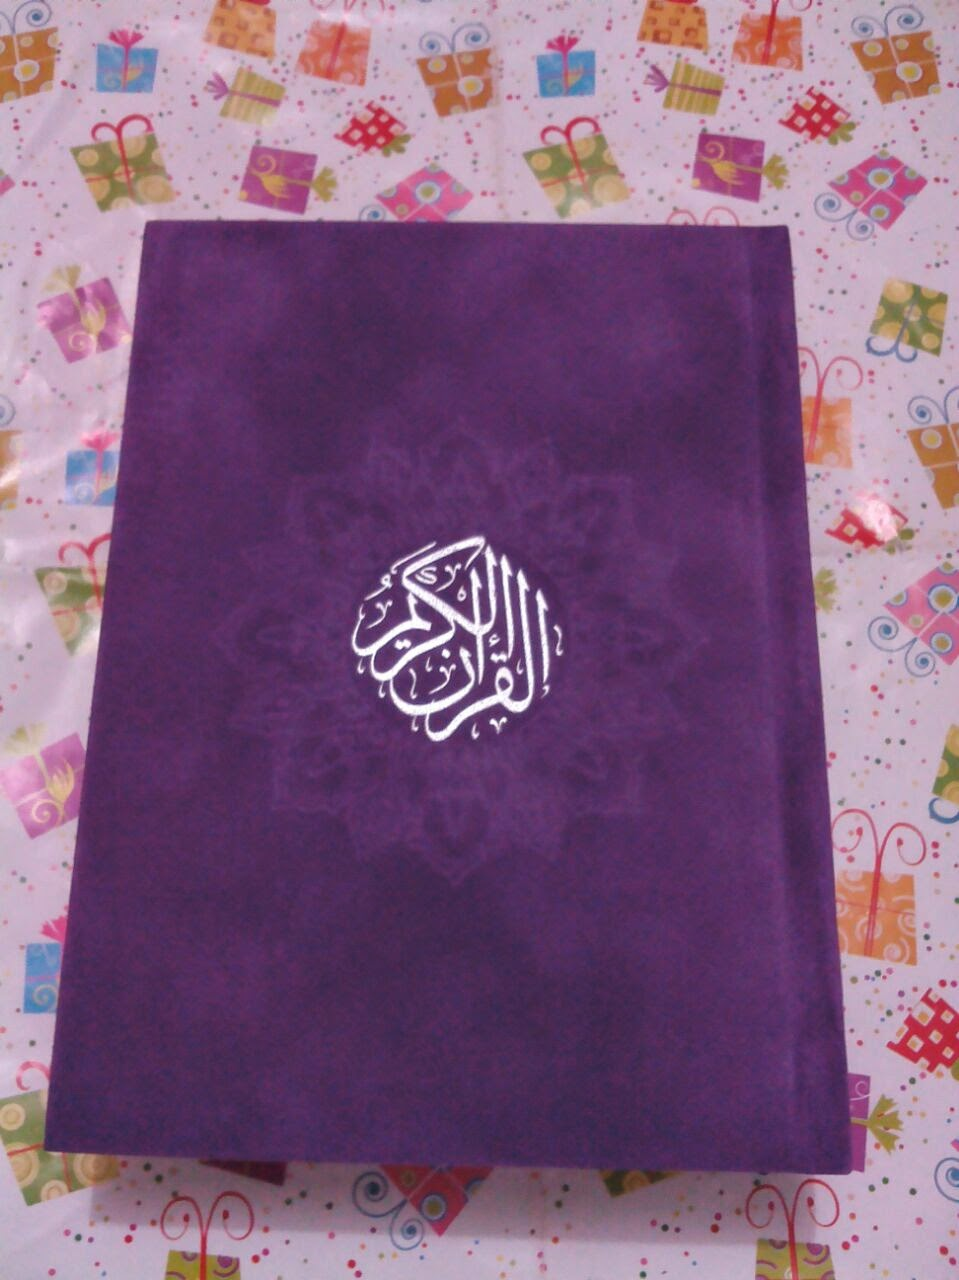 rainbow quran, rainbow quran new design, rainbow quran with english translation, rainbow quran english translate